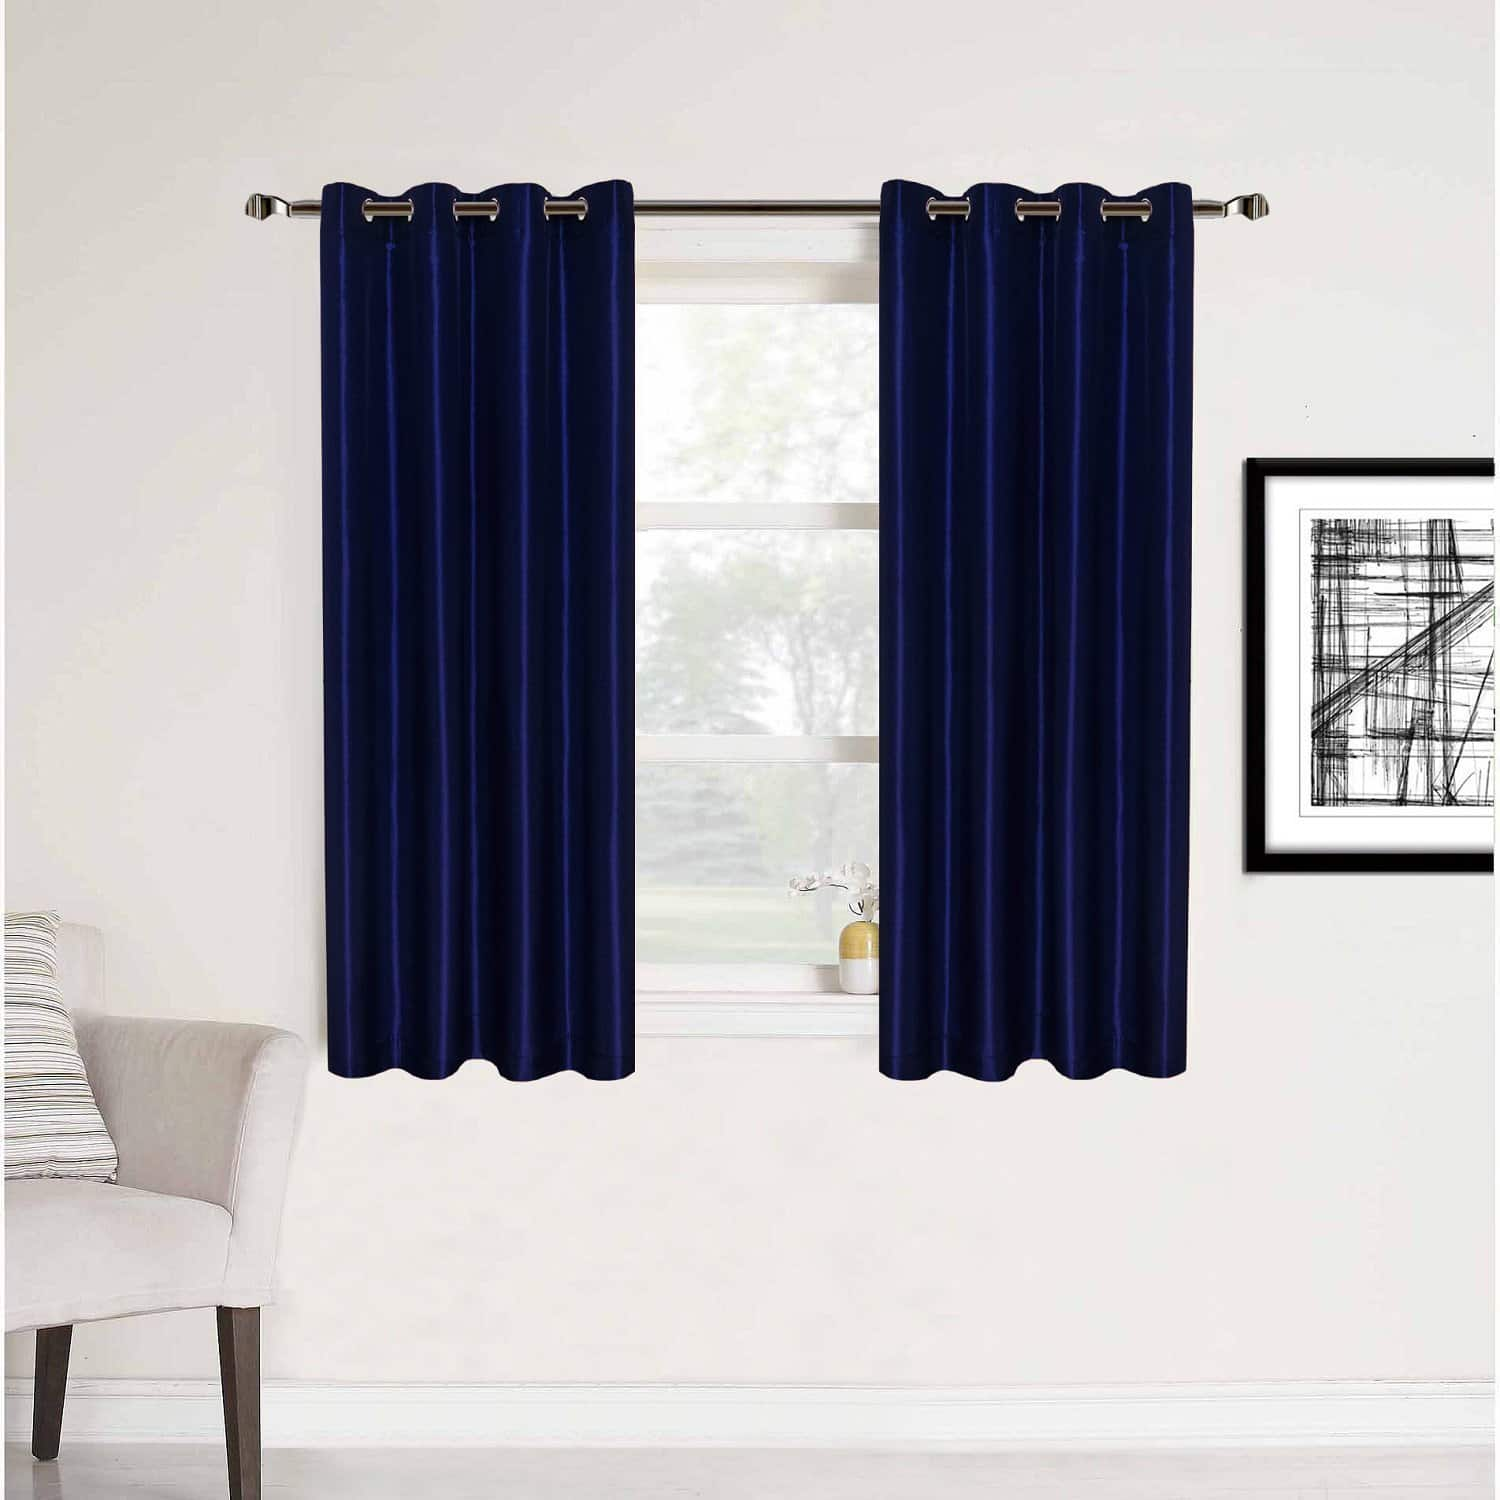 HollyHOME, 2 Panel Room Curtains, Blackout / Thermal Insulated, Navy Blue, 52x45 Inch $8.24